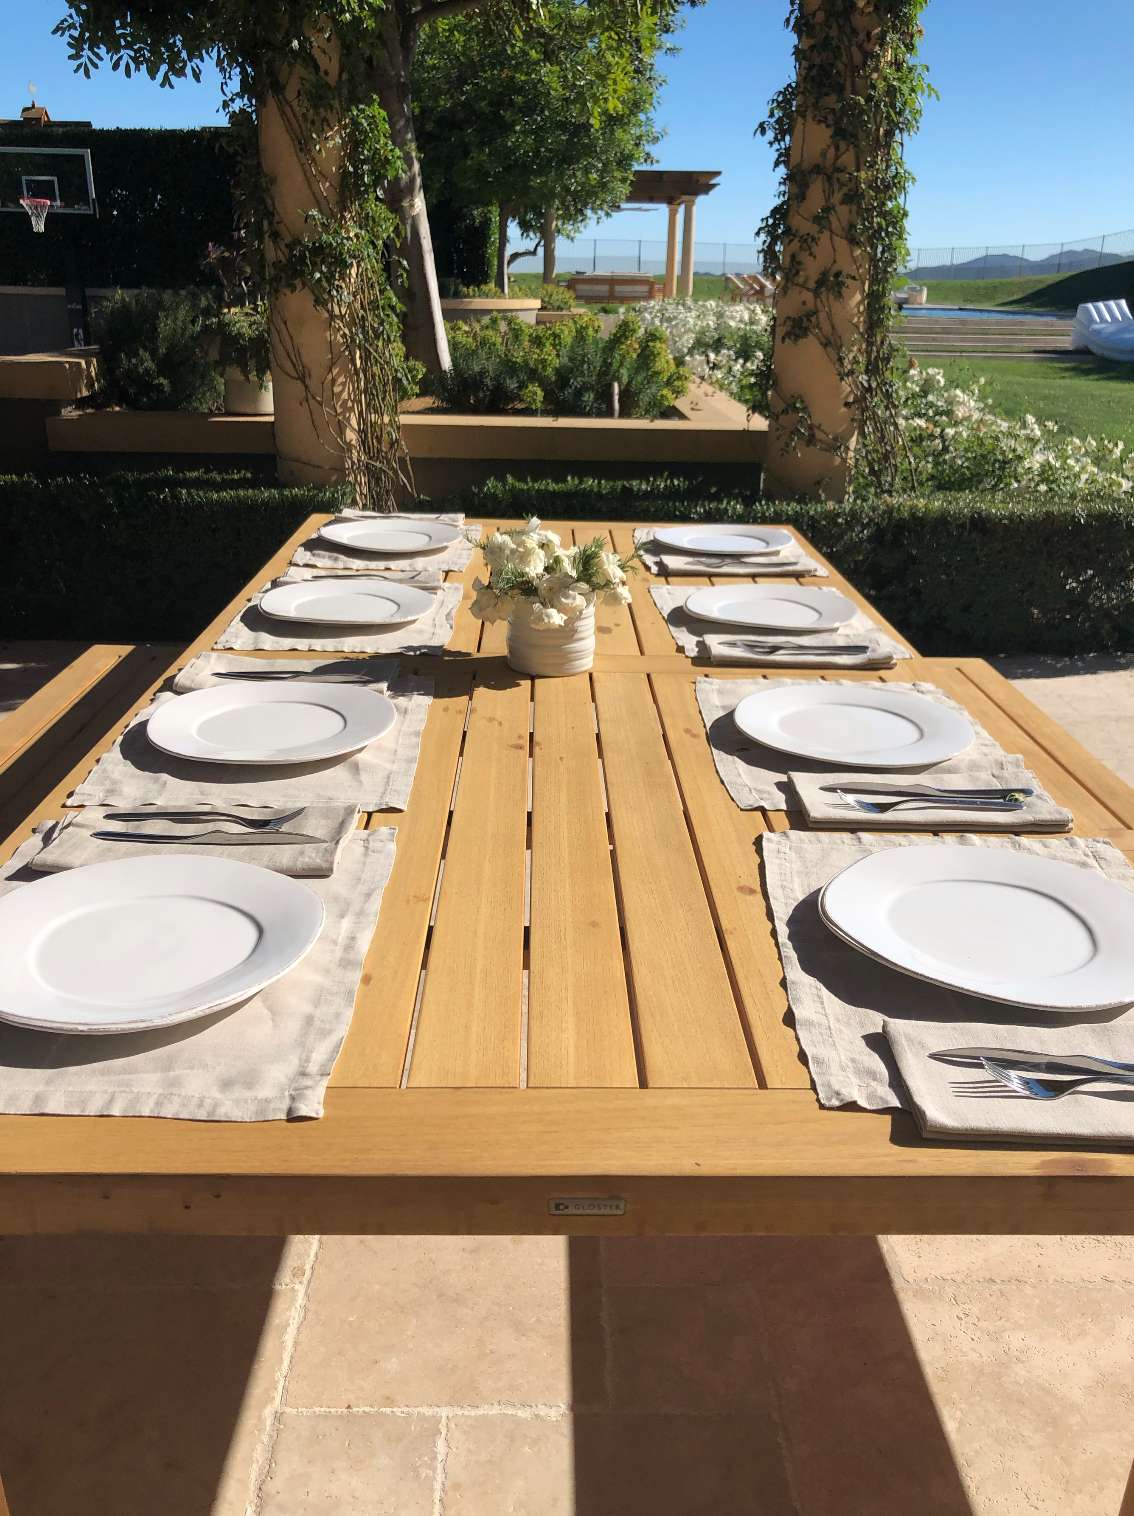 kourtney kardashian's backyard table setting